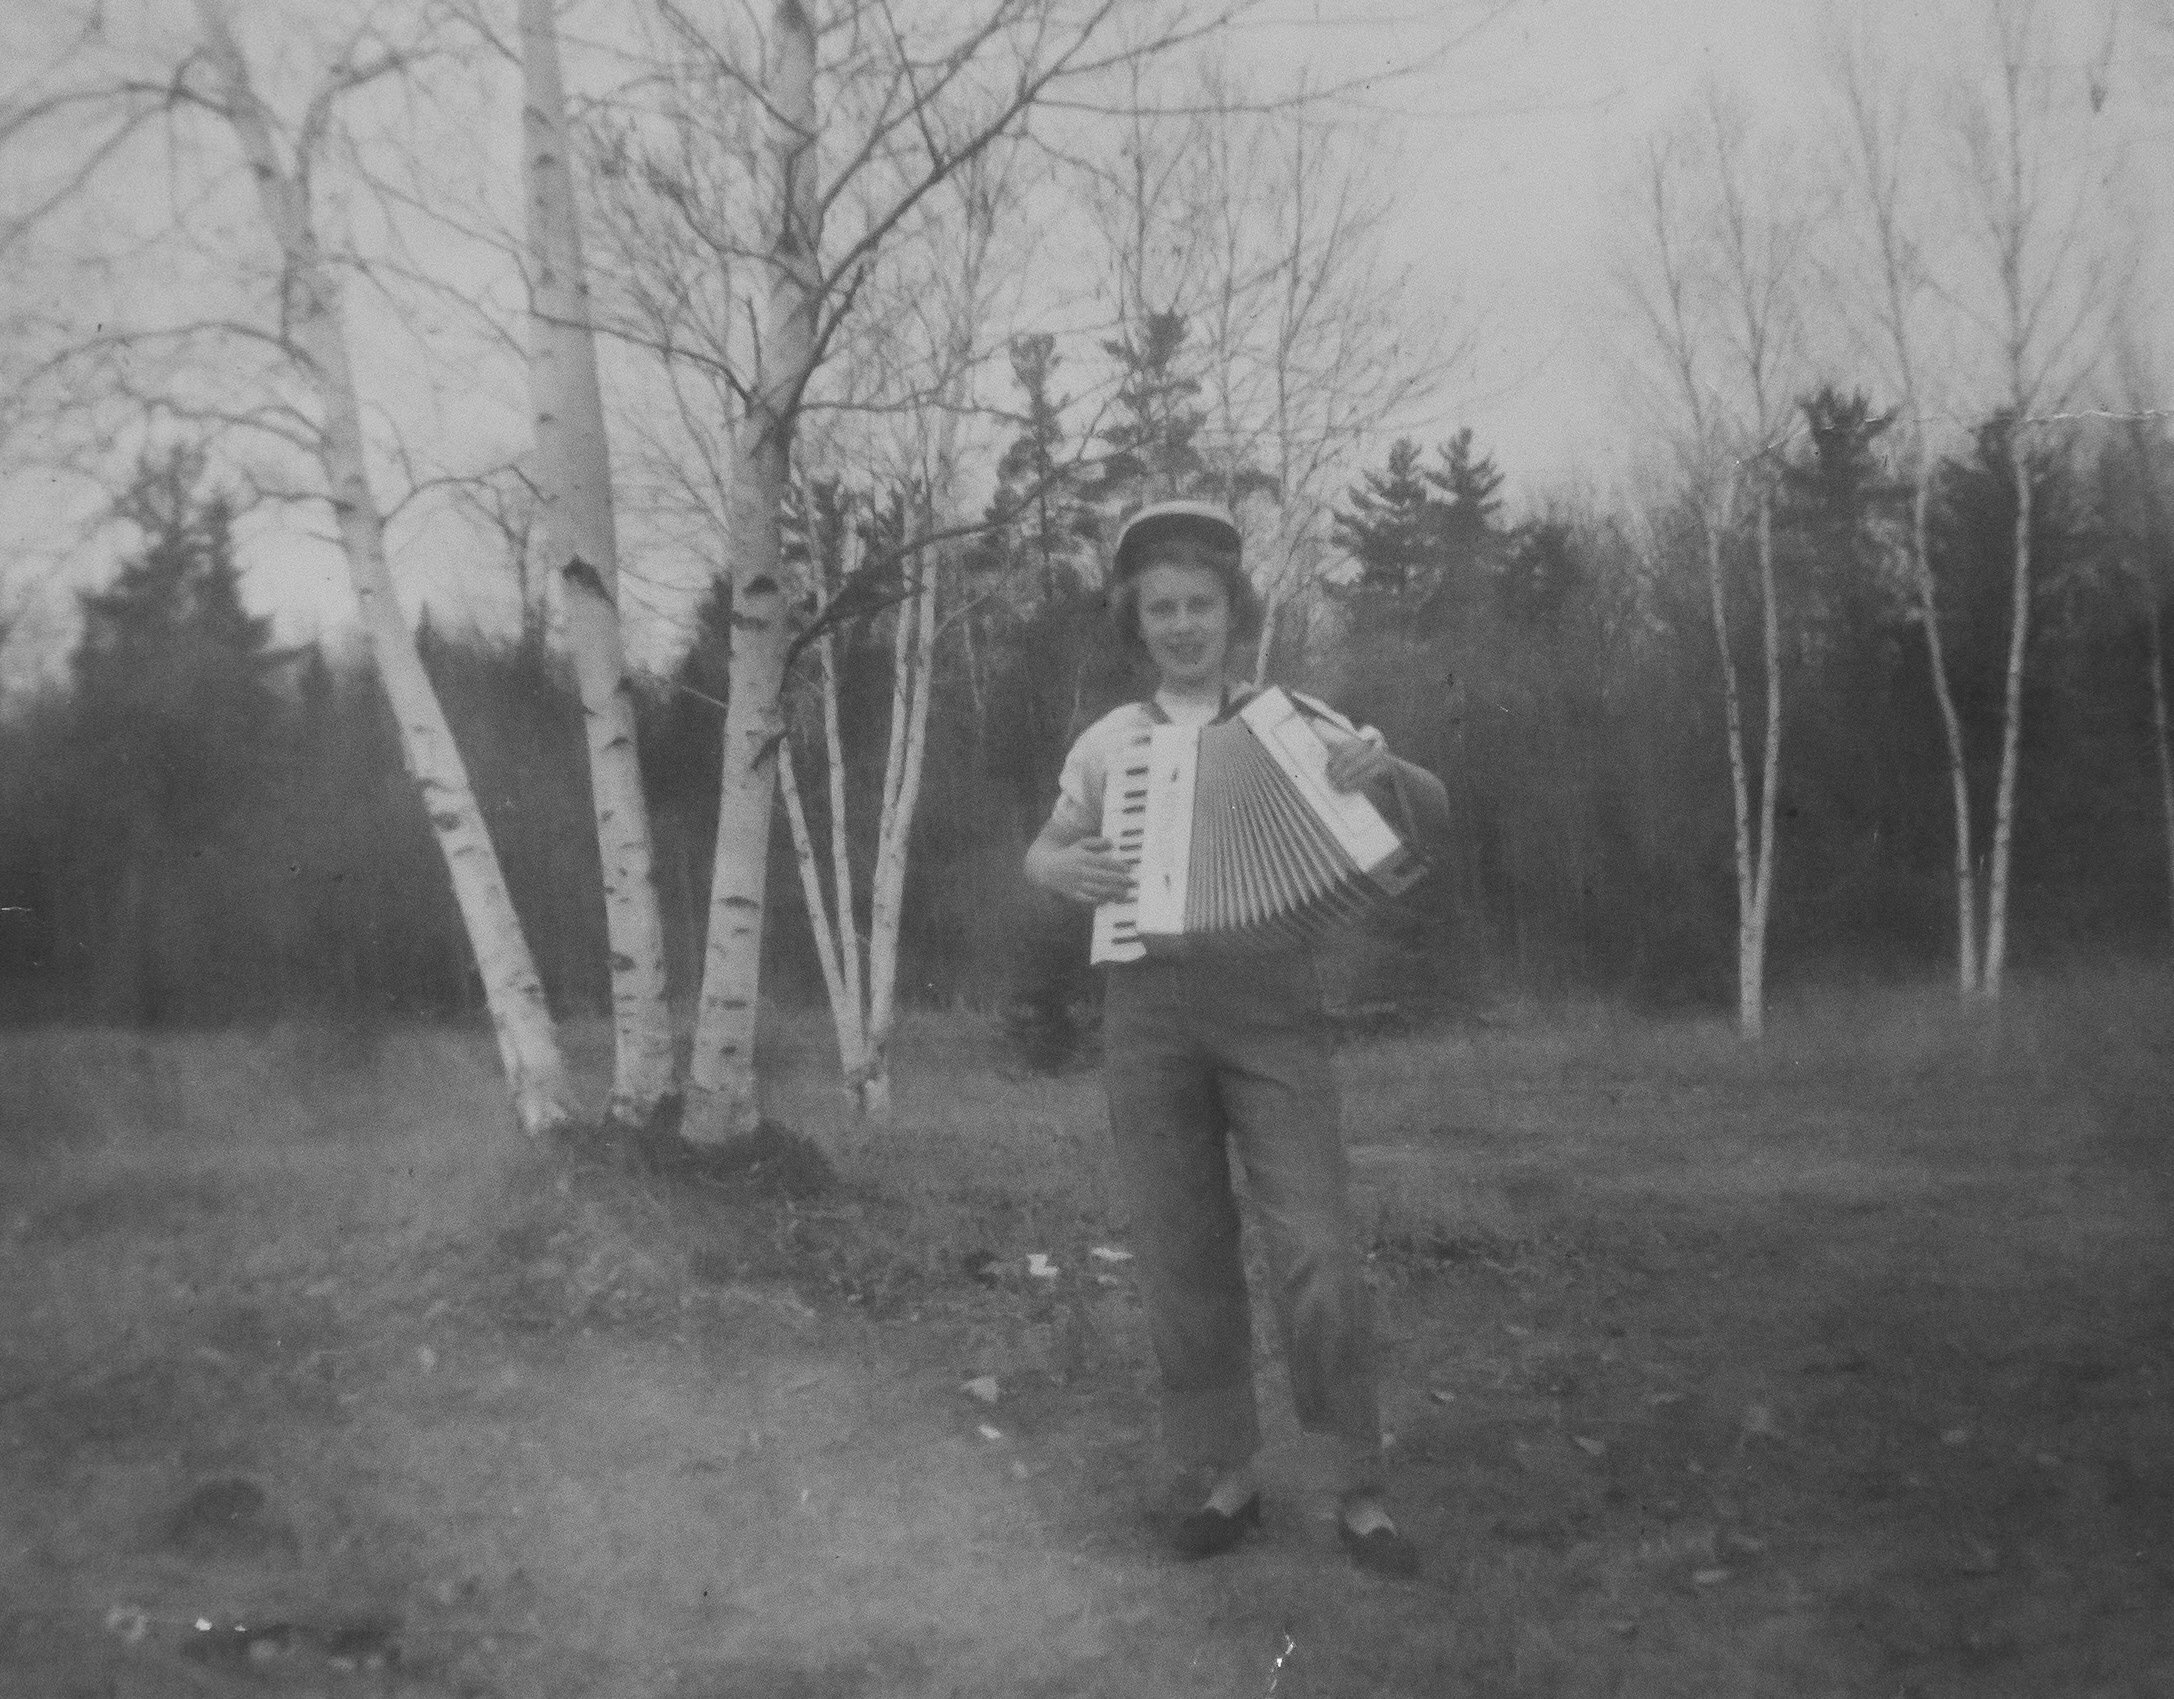 "Caption written by my dad. ""My mother as a teenager playing the accordion at the old Bodin homestead west of Glen, Minnesota (1949 approx). Her father played in the marching band in WW I, and he taught her how to play the accordion before his untimely death (my mother was only 11). Mom has always loved music, and I remember her playing the accordion and organ many times in my youth. She was so proud of us kids (and grandkids) when we also learned how to play instruments. She was fun, creative and adventuresome, traits I see today in my children and grandchildren."""